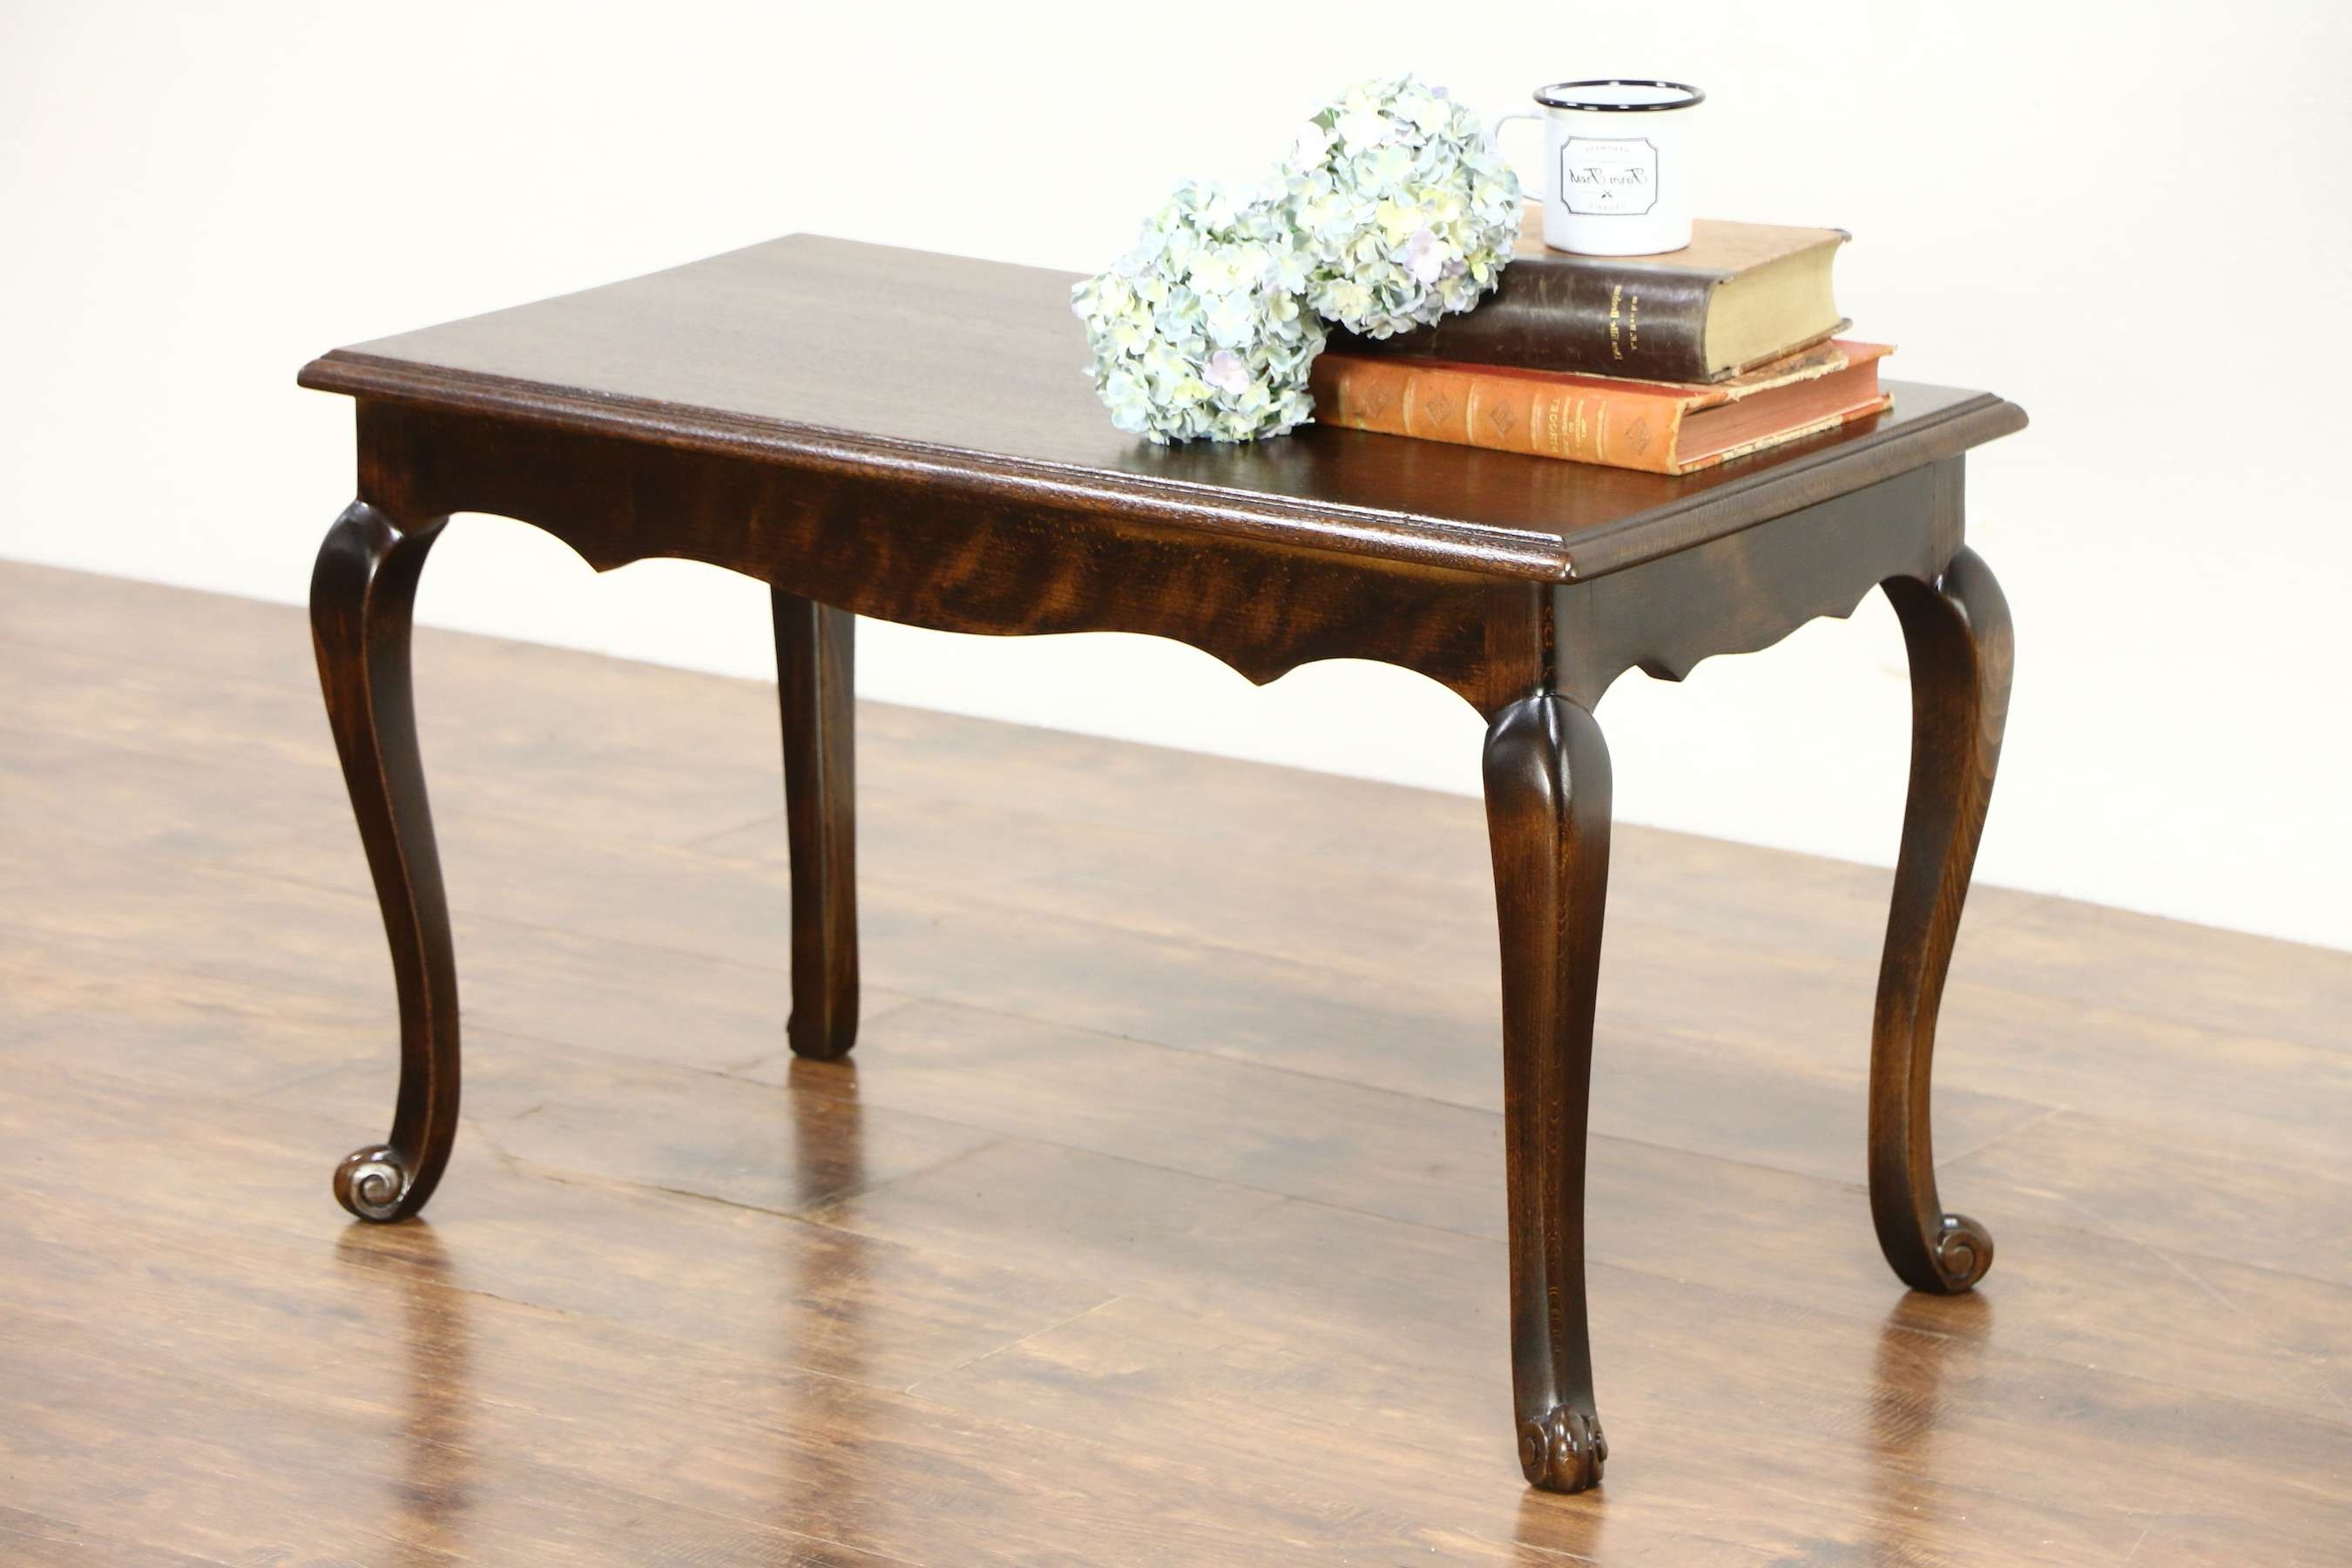 Scandinavian 1930's Vintage Bench Or Coffee Table, Oak & Beech In Most Recent Beech Coffee Tables (View 7 of 20)